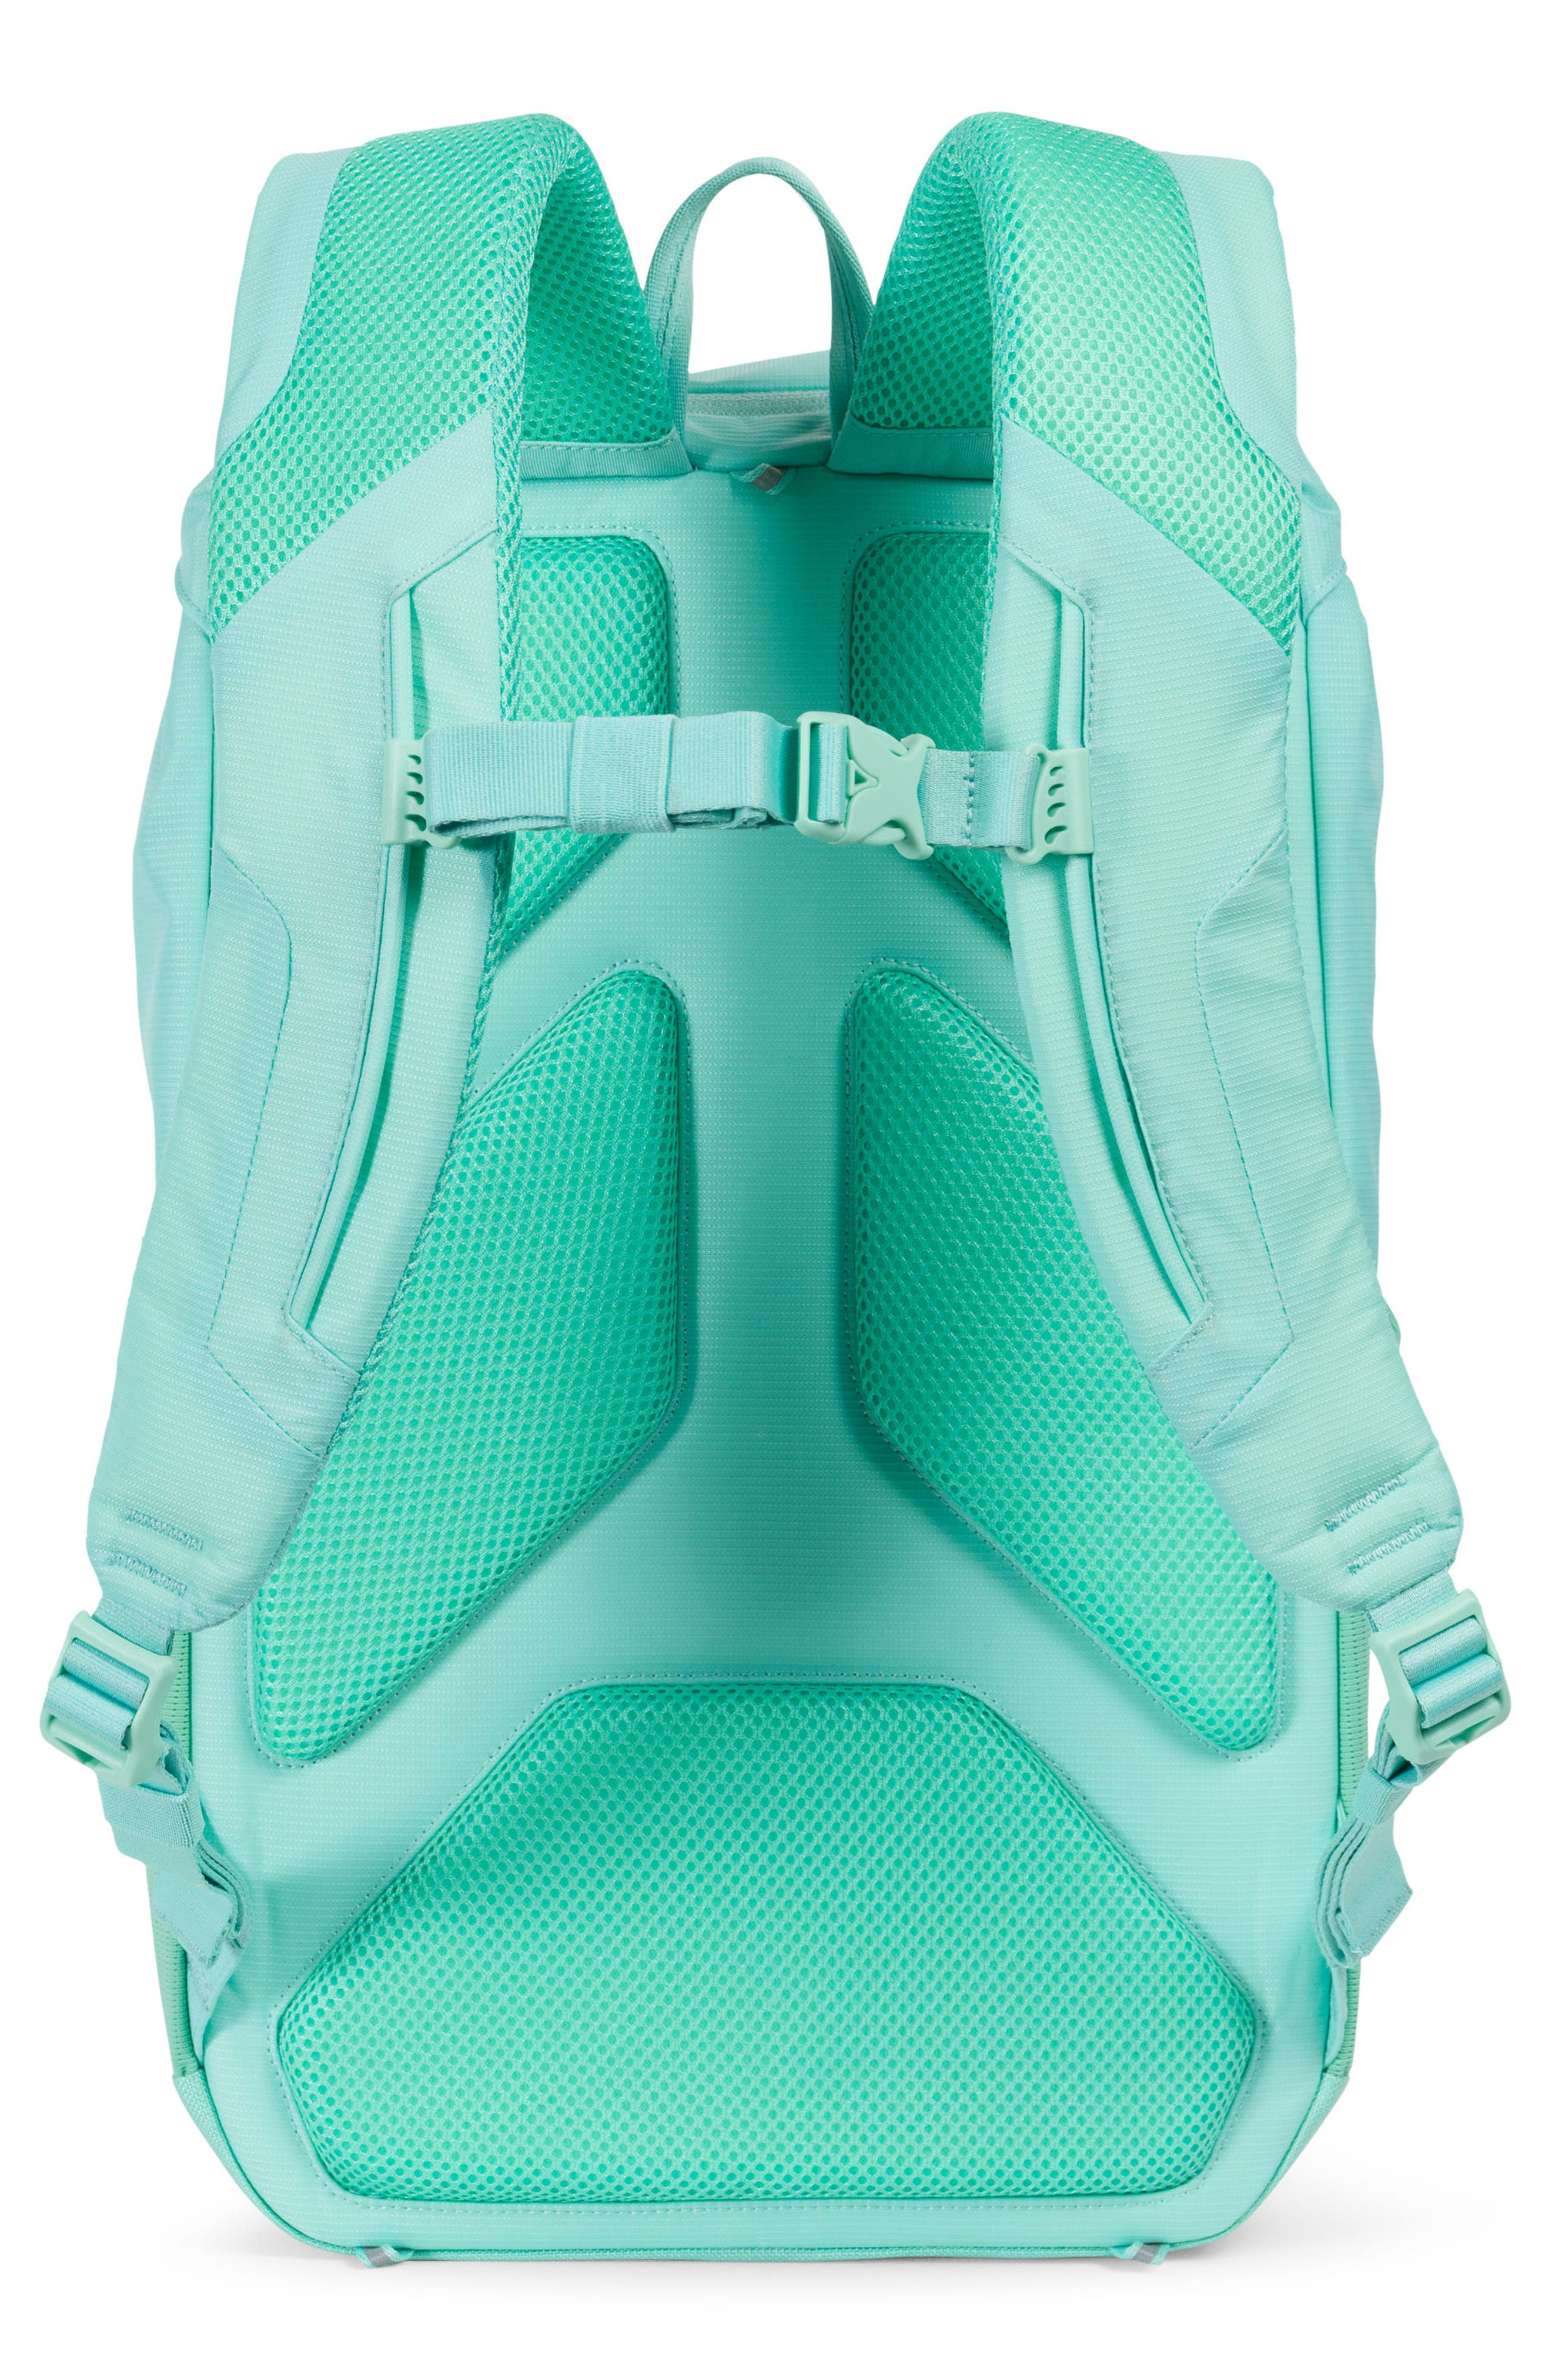 Barlow Trail Backpack,                             Alternate thumbnail 2, color,                             Lucite Green